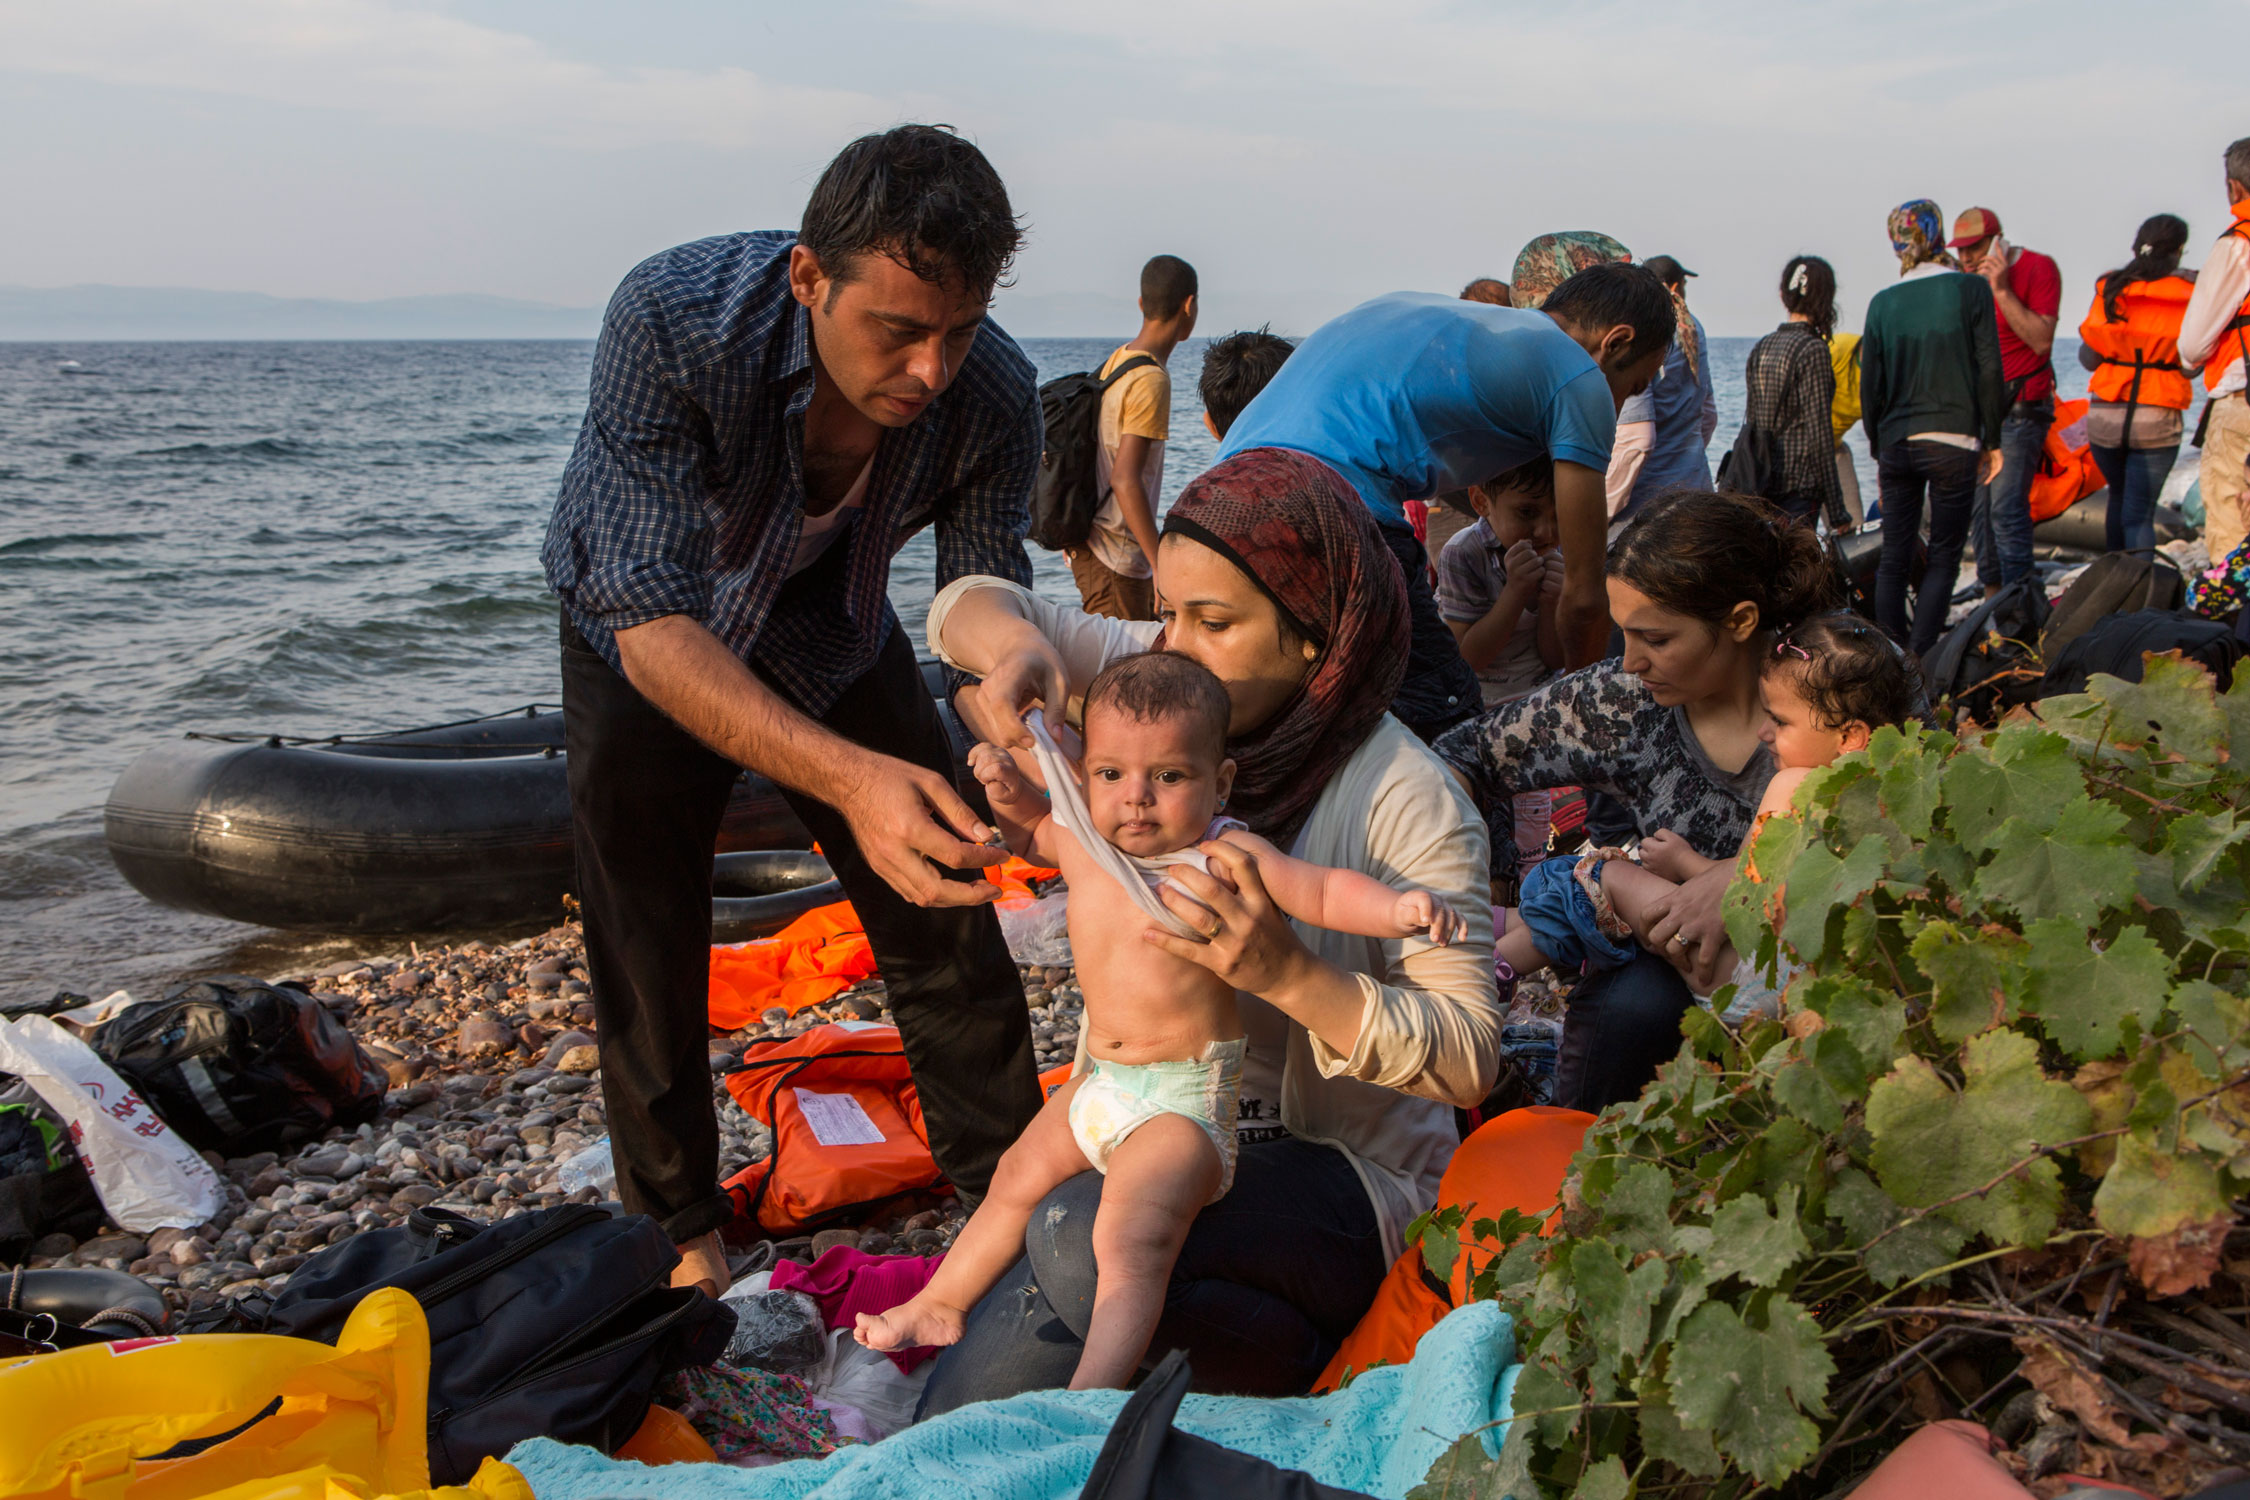 Photographer: Ivor Prickett | A Syrian couple change their baby out of its wet clothes after a very rough crossing across the Aegean from Turkey to the Greek island of Lesbos.